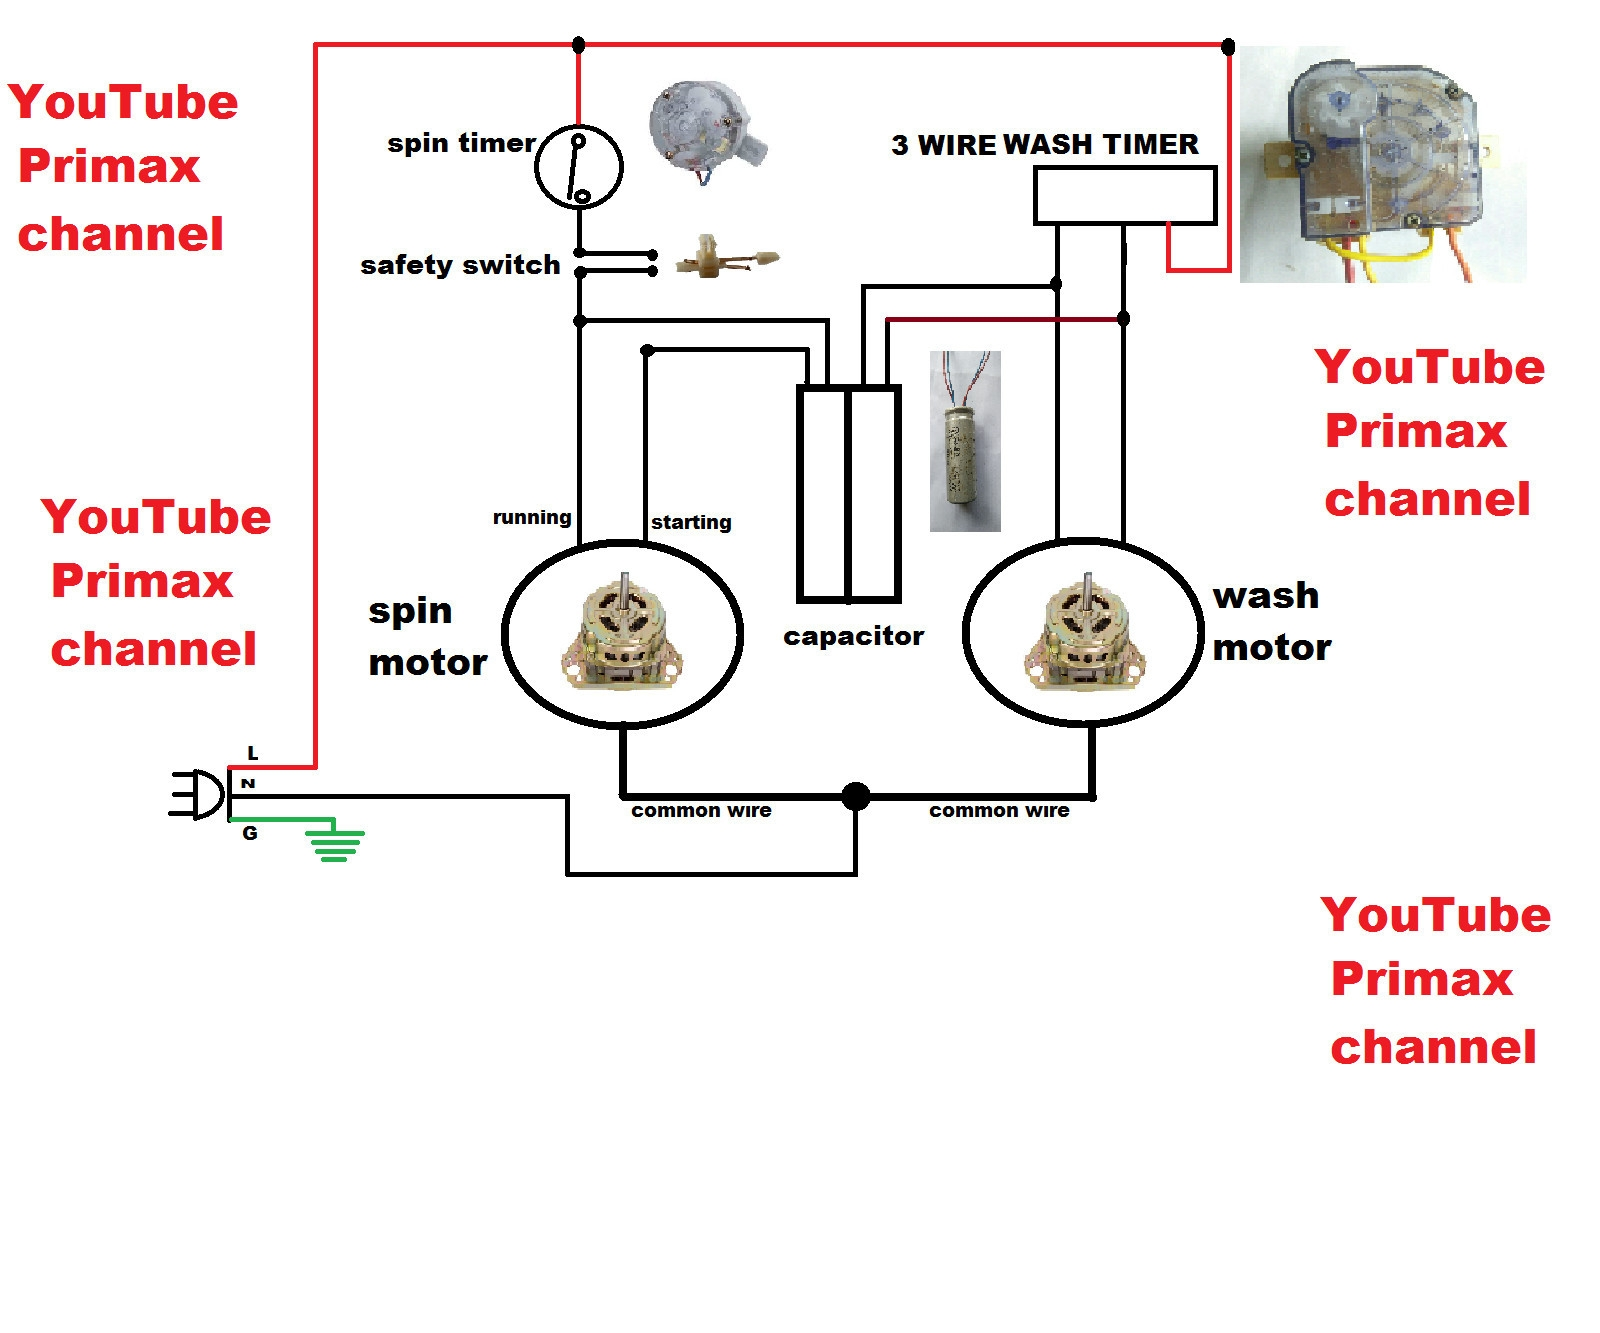 3 wire washing machine motor wiring diagram Download-Wiring Diagram for Washing Machine Fresh 3 Wier Timer Diagram Connection Simple Washing Machine Wiring 1-j